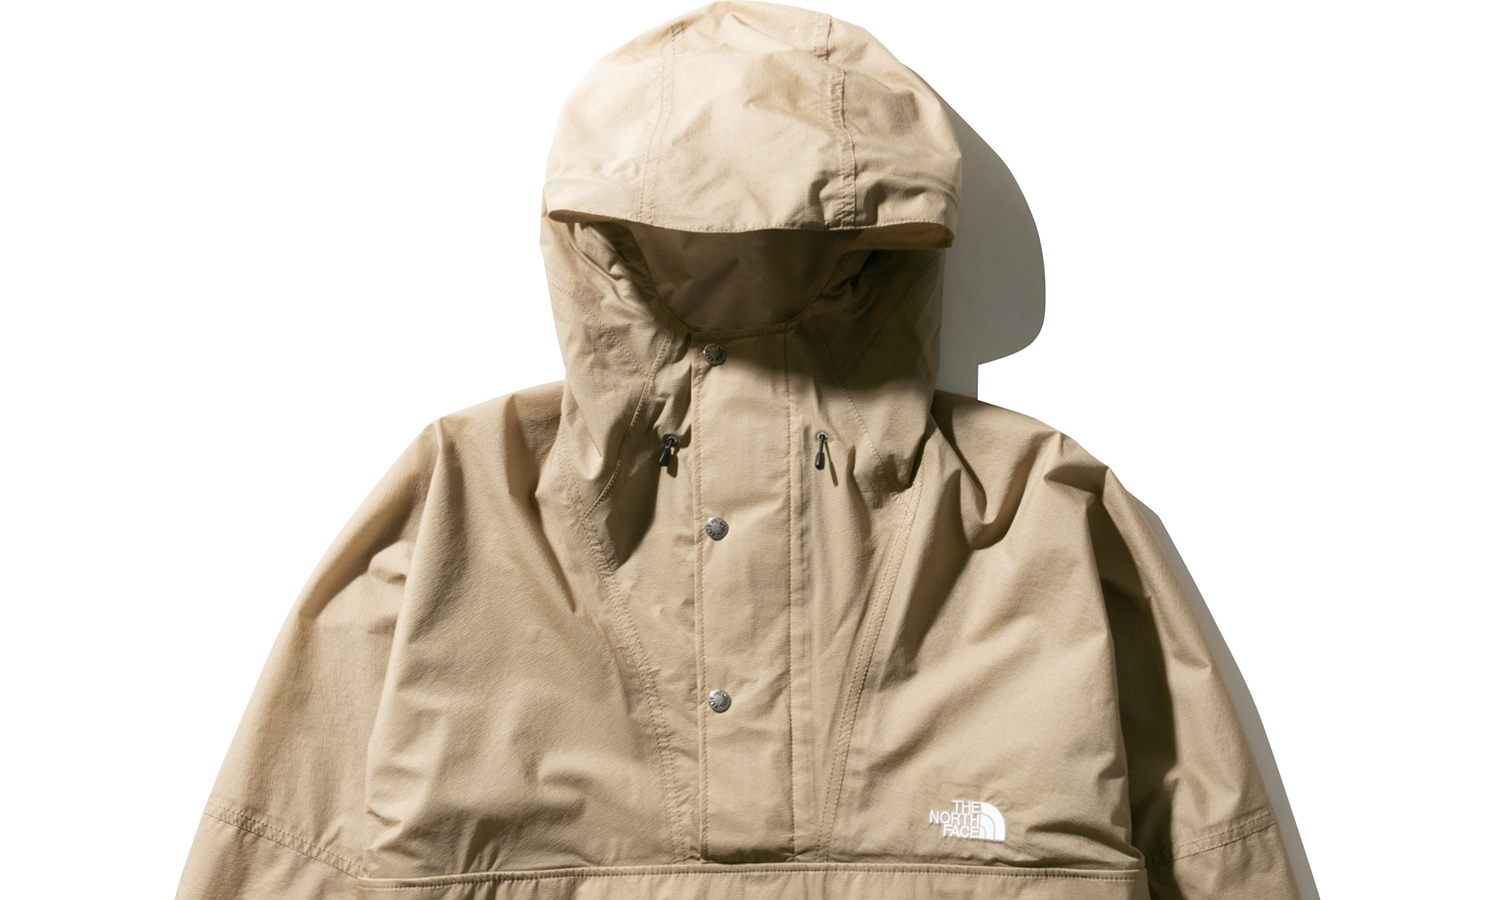 THE NORTH FACE 经典夹克「Windjammer」即将重制回归